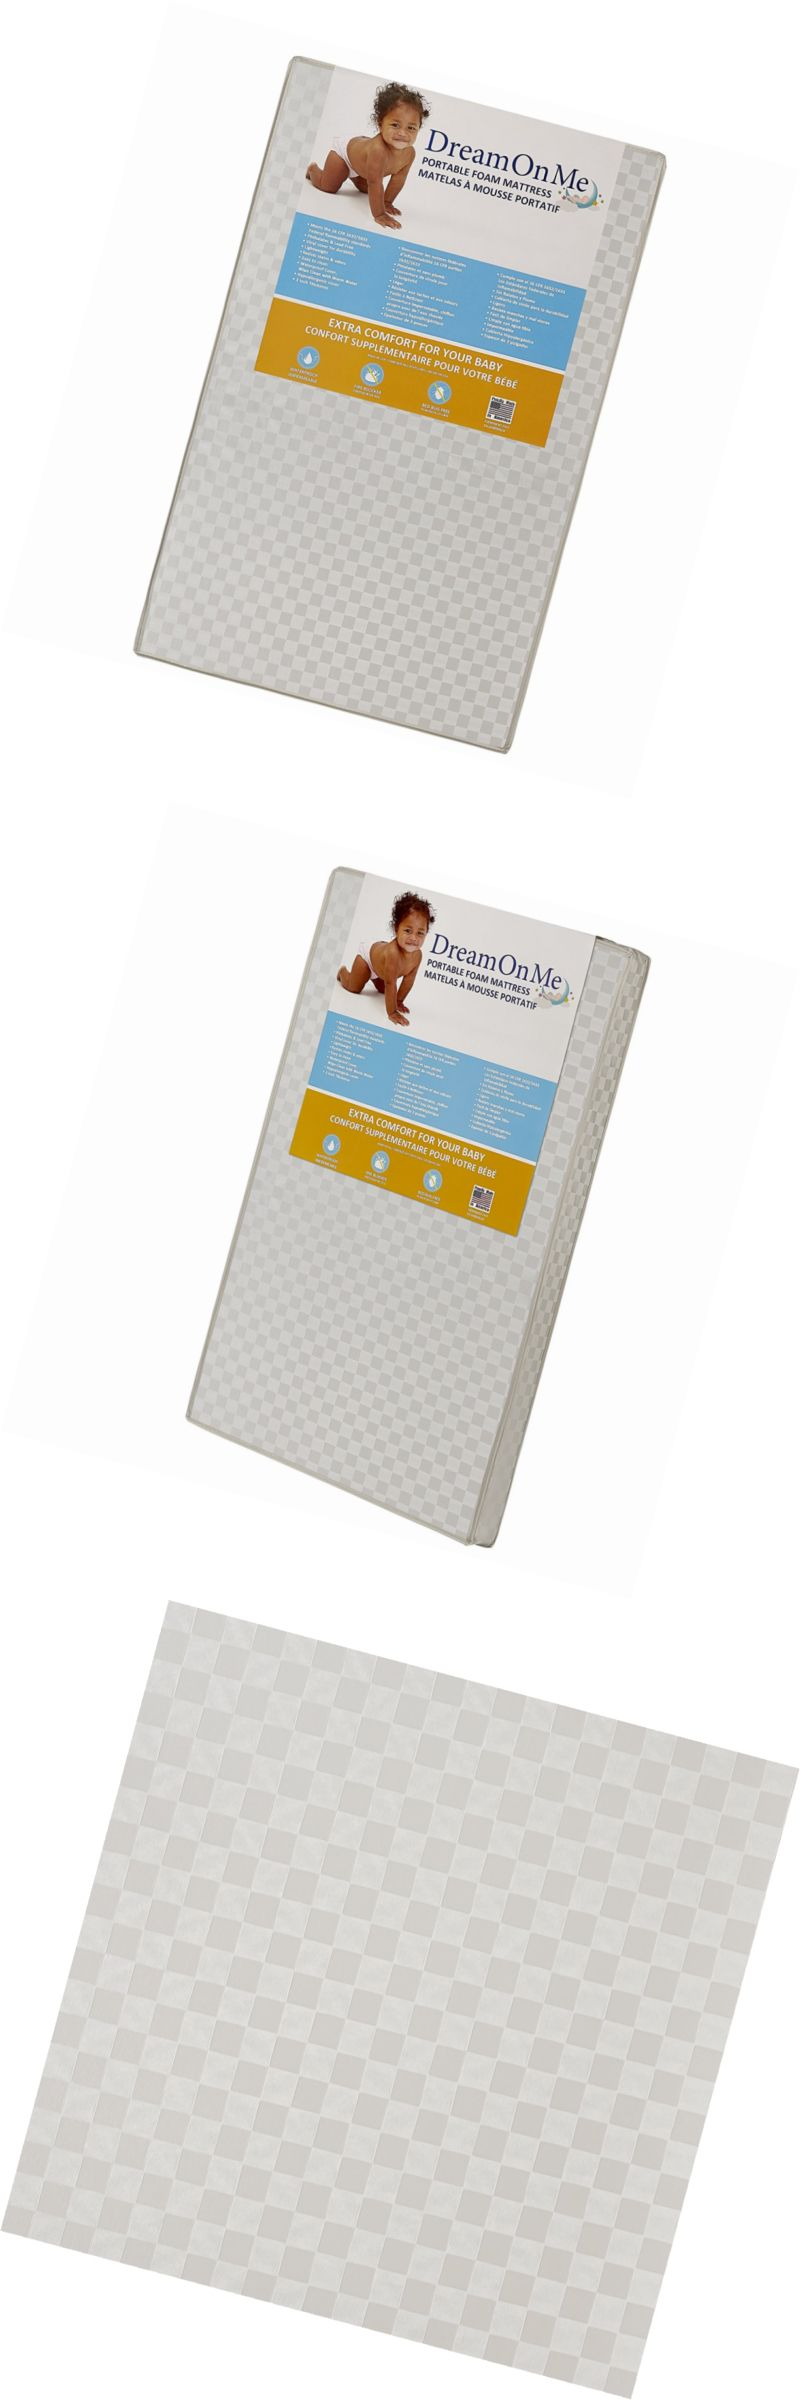 crib mattresses 117035 dream on me 3 portable crib mattress white